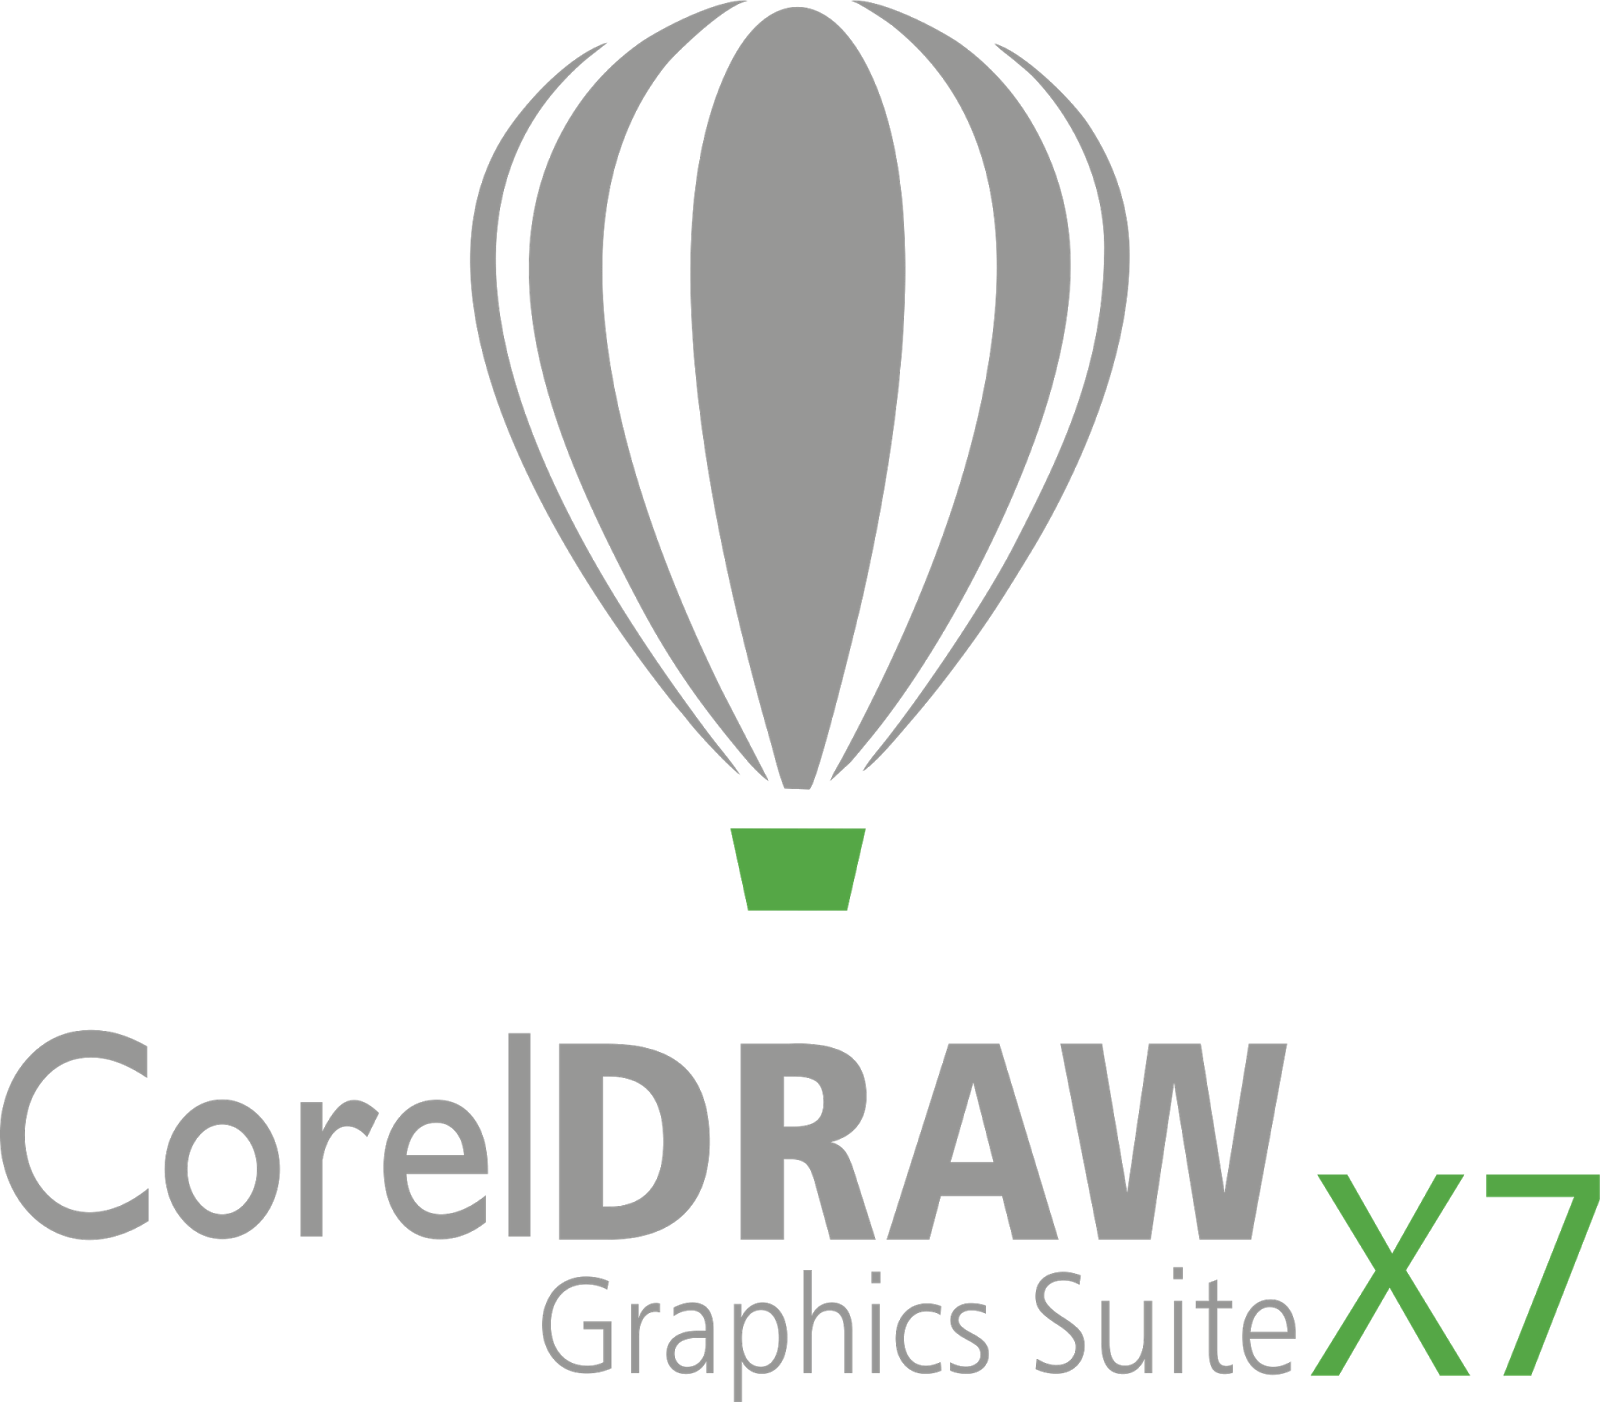 Corel draw version - Through Coreldraw X8 Free Download We Can Design Banners Header And Sidebar Of Websites Menu And Layouts Also Corel Font Manager Is Awesome Software